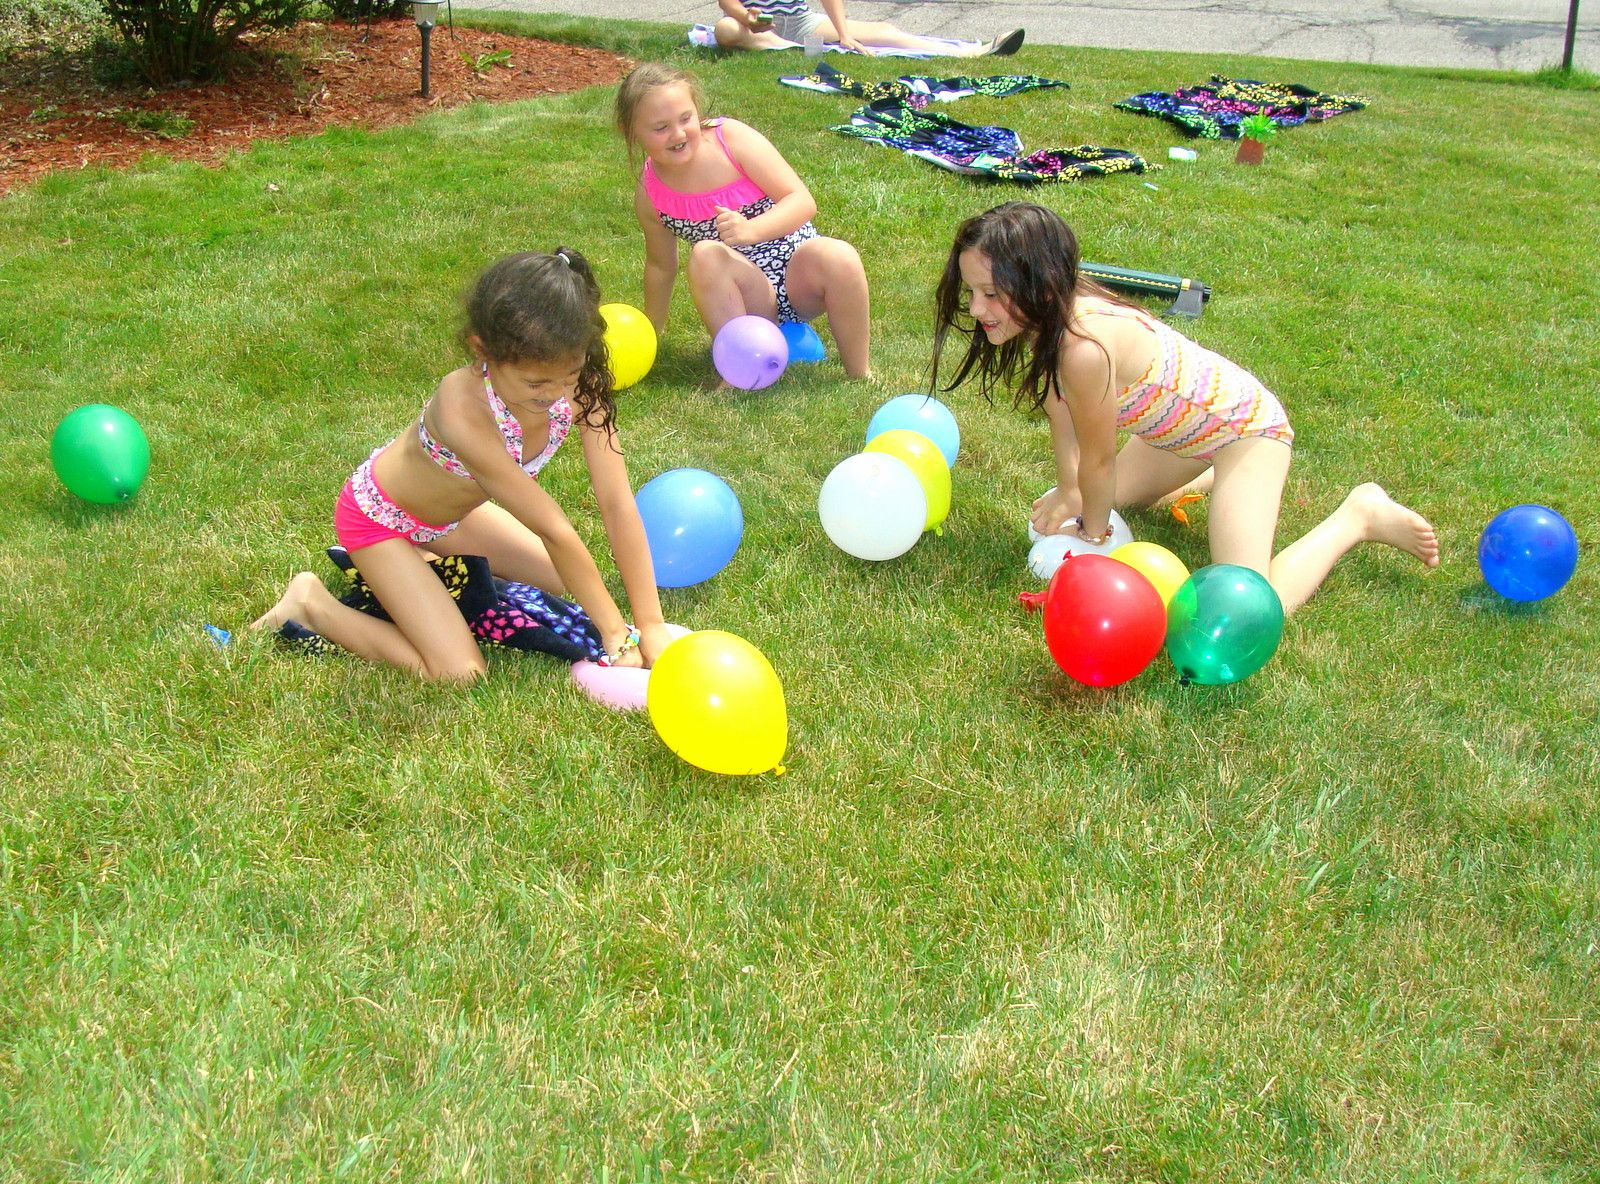 candy balloon pop pool party games outdoor party kids birthday